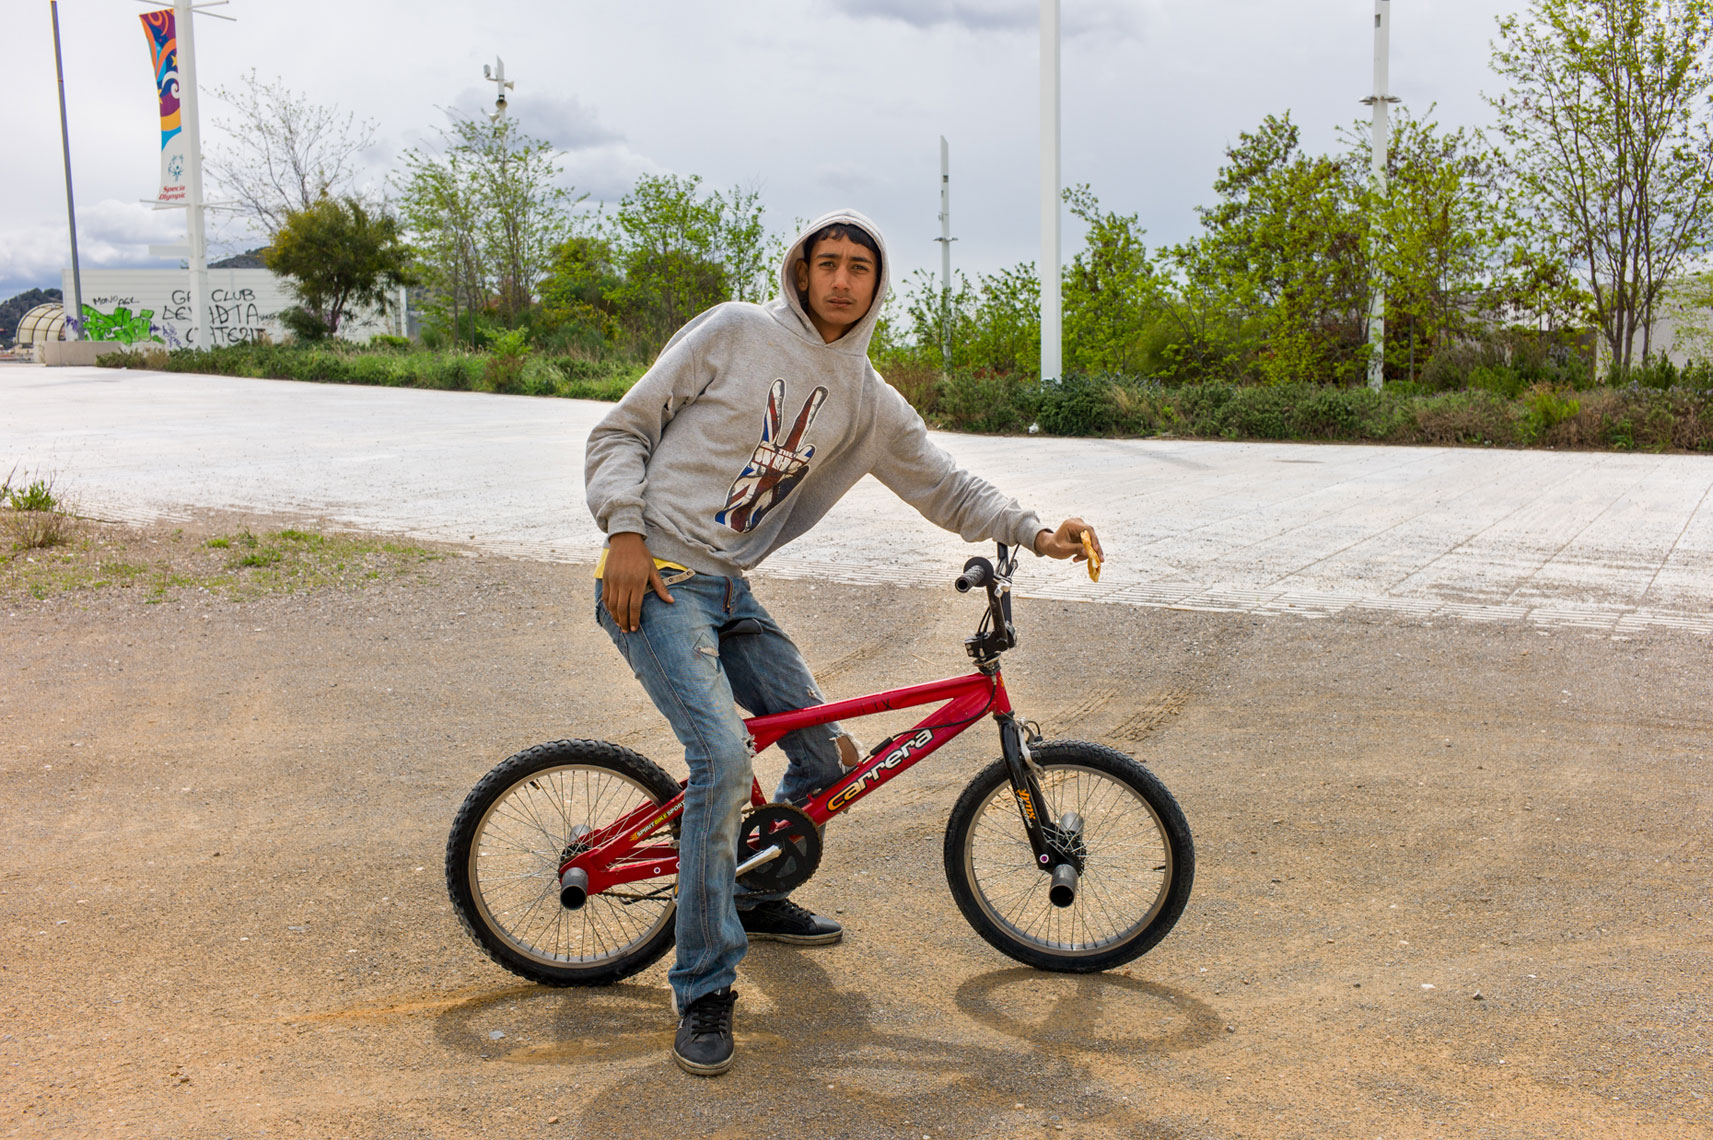 jon pack, photographer | the olympic city | athens, greece | oaka | bicycle teen